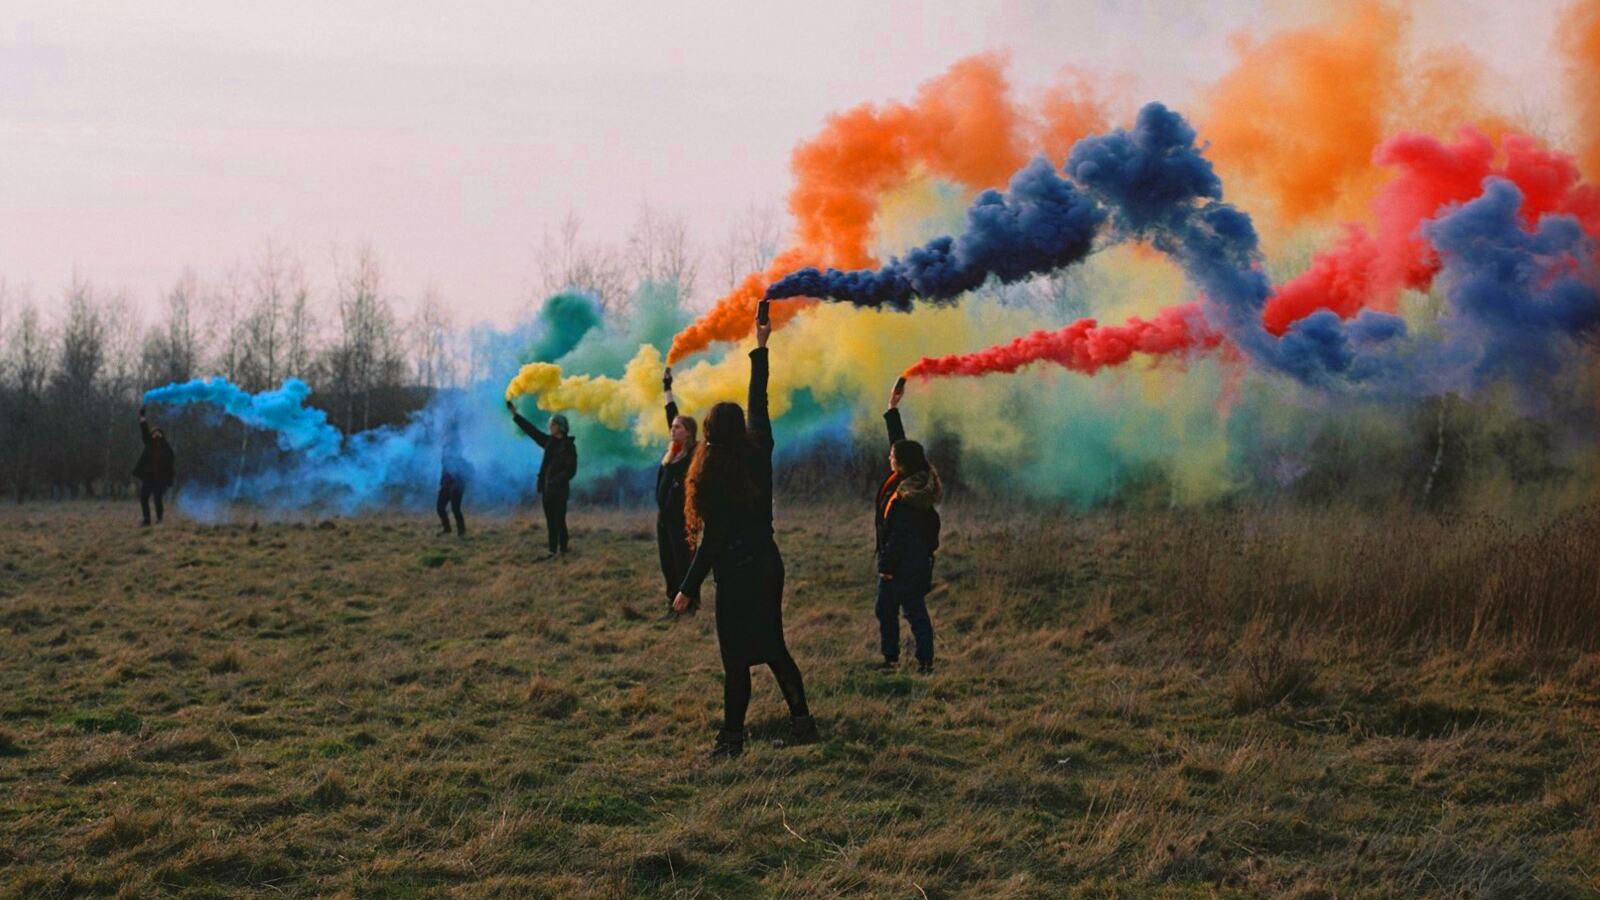 Sisters Uncut set off rainbow-coloured smoke in solidarity with LGBTQ+ migrants during a demonstration in support of detainees at Yarl's Wood Immigration Removal Centre